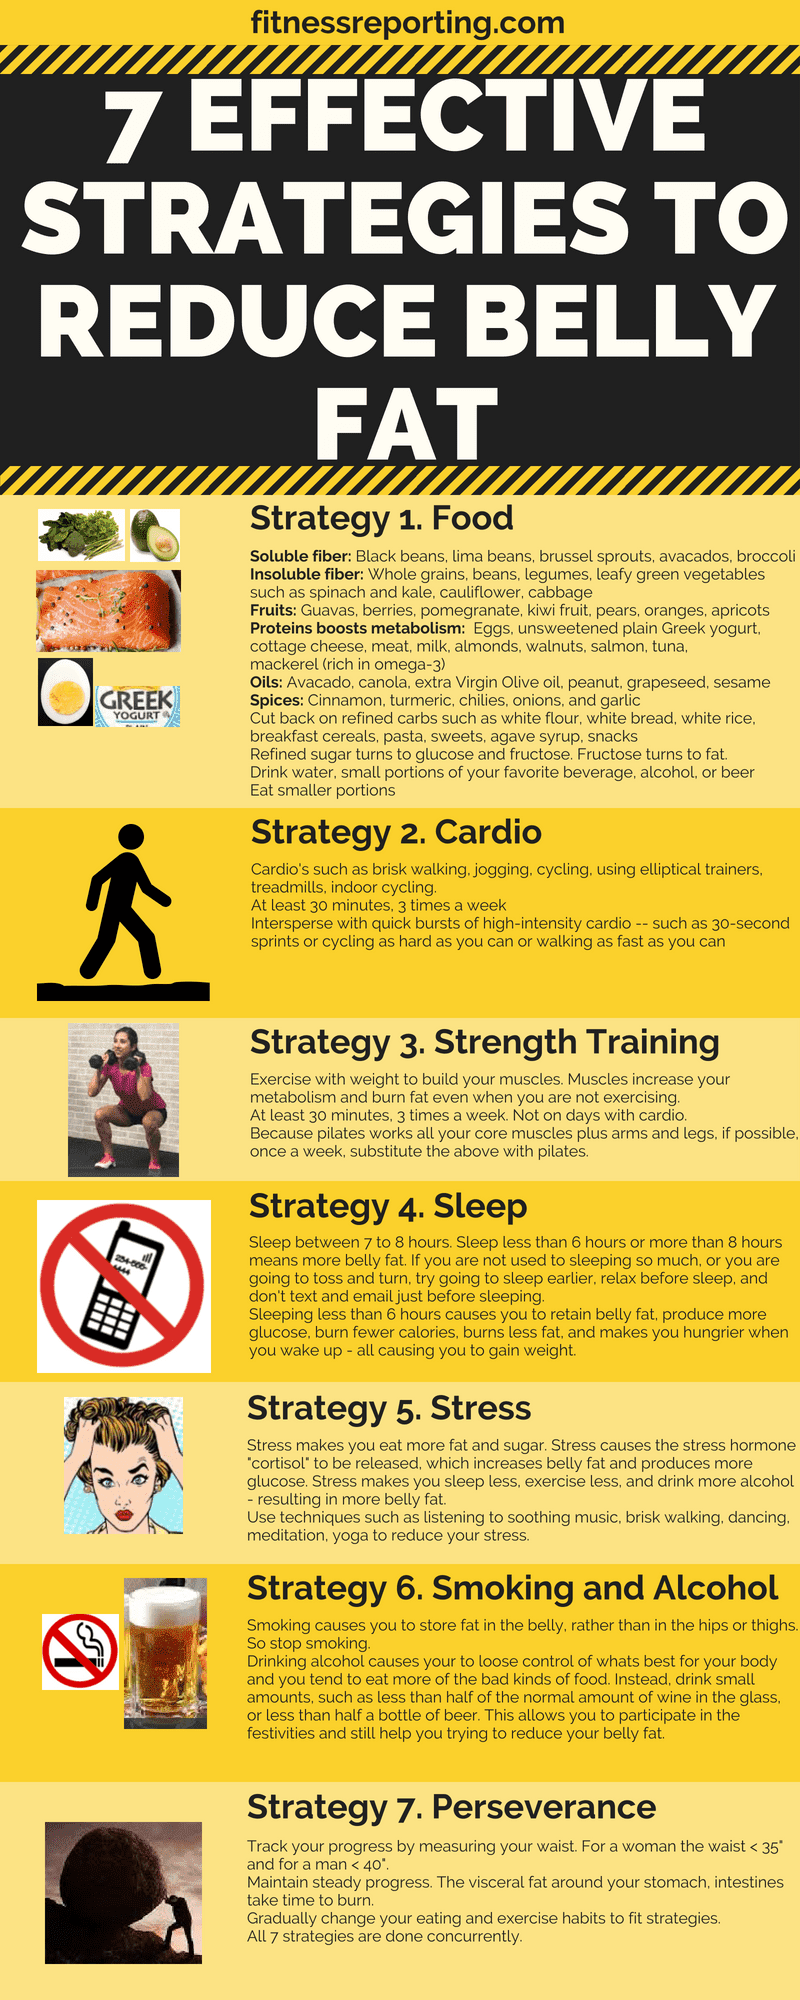 7 Effective Strategies to Reduce Belly Fat #infographic